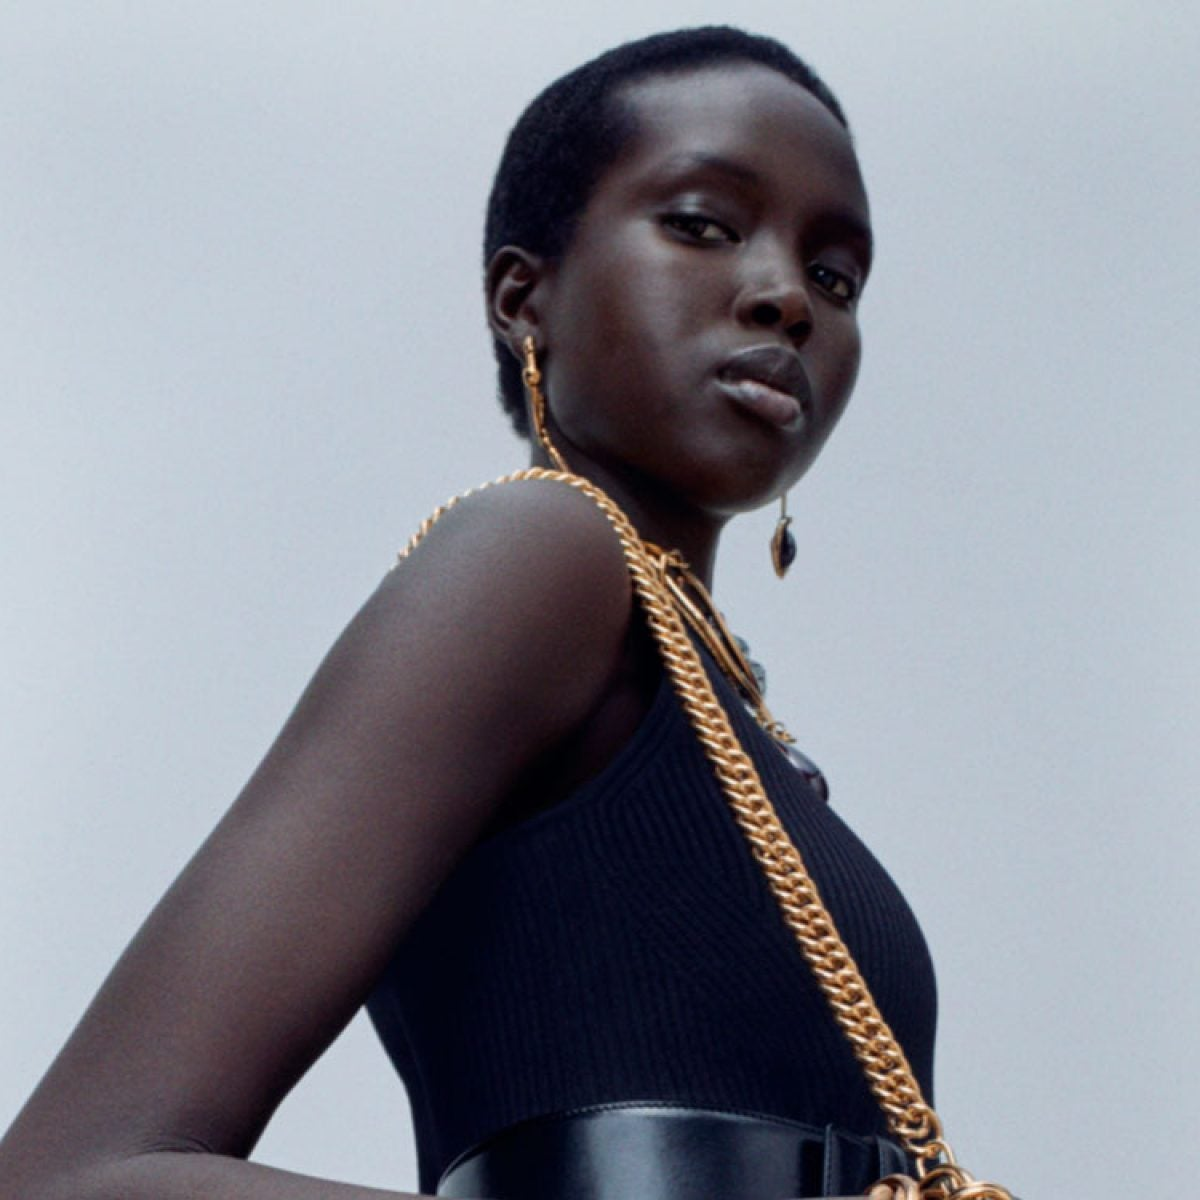 Alexander McQueen Launches The Story Shoulder Bag